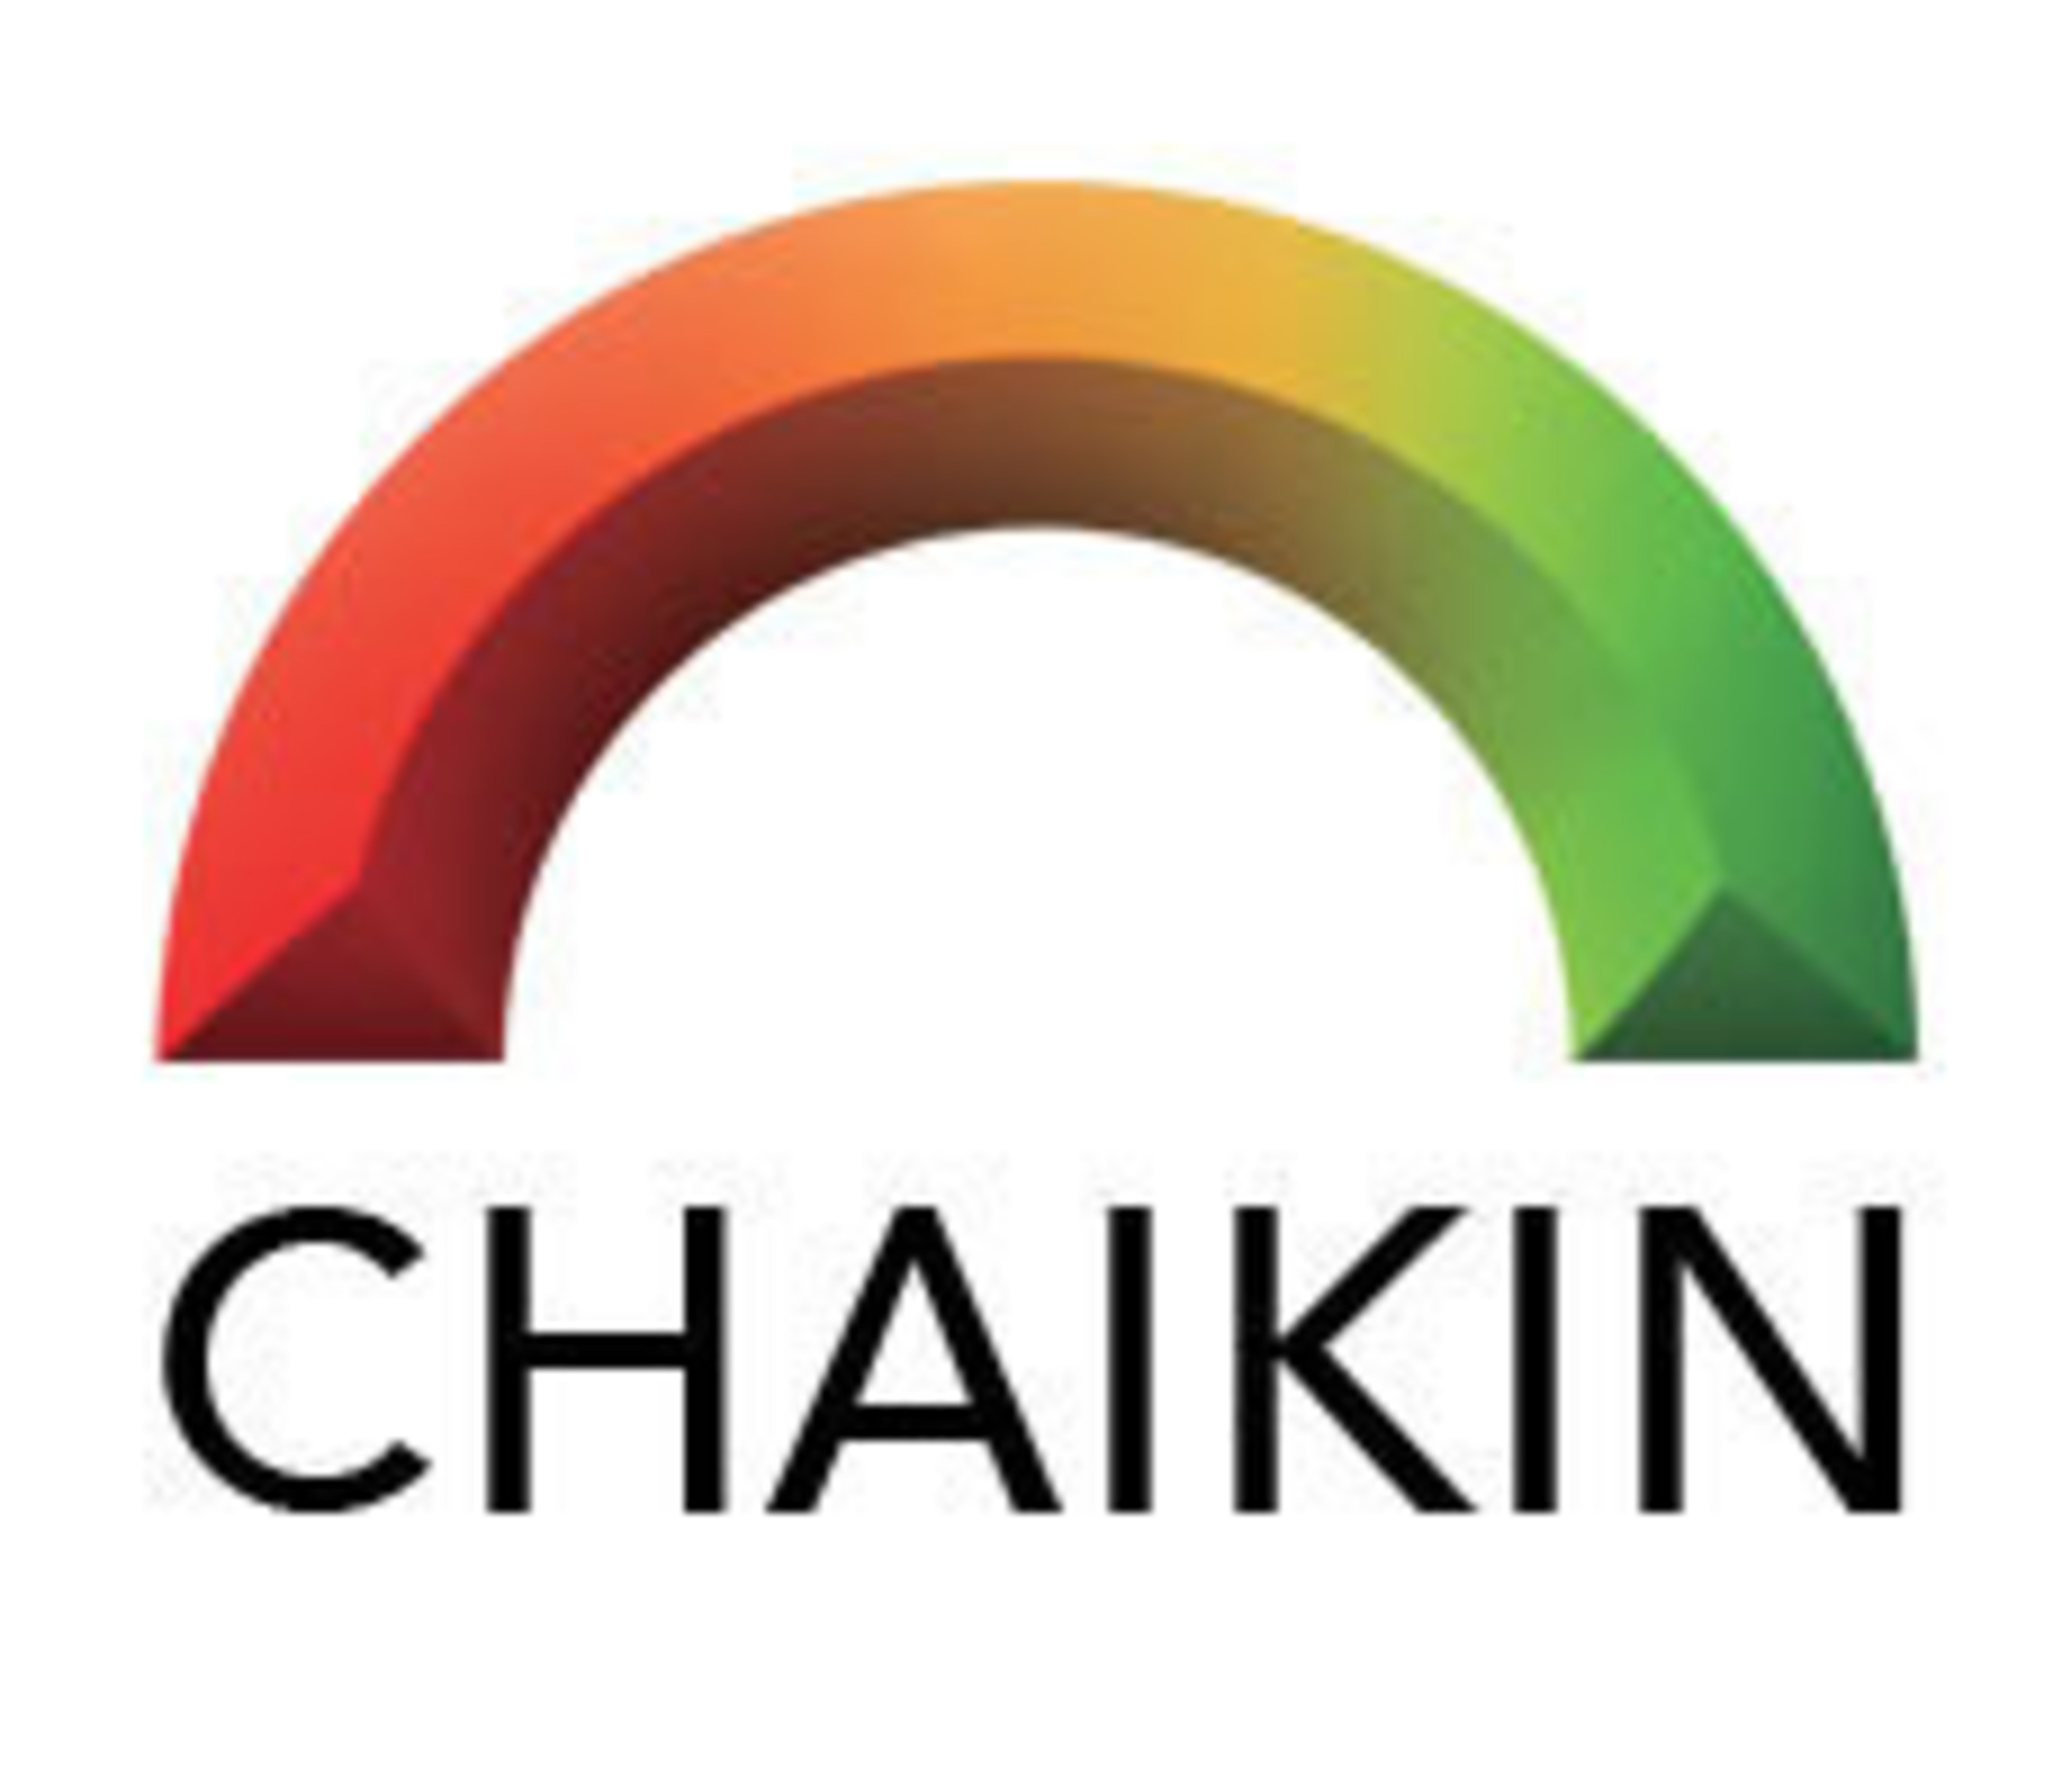 Chaikin Analytics Adds Stock Screener to Stock Research Platform